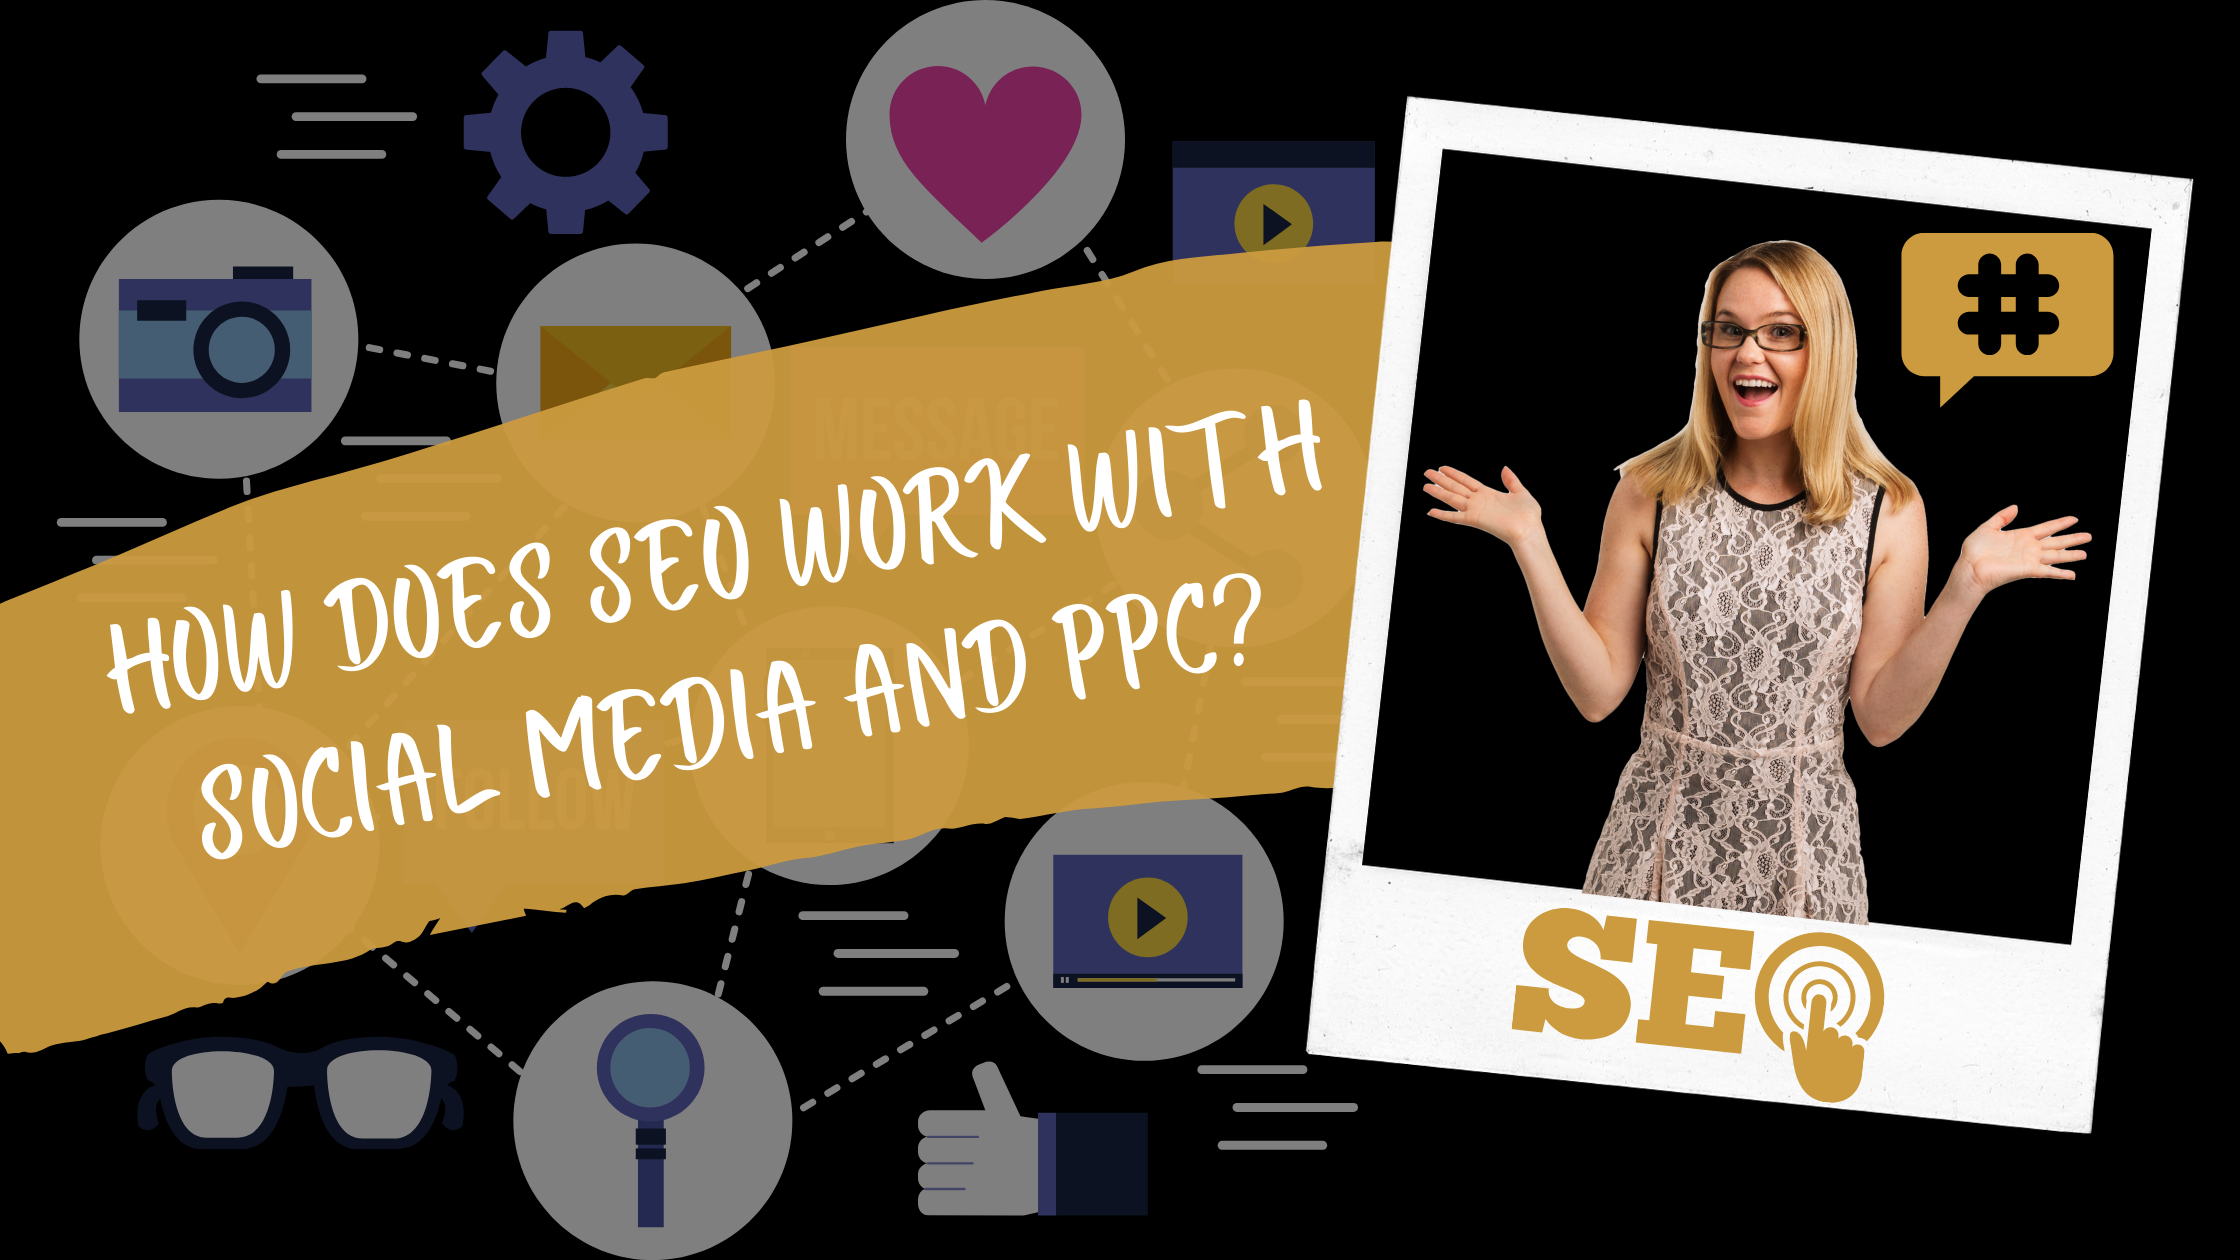 How does SEO work with social media and PPC_